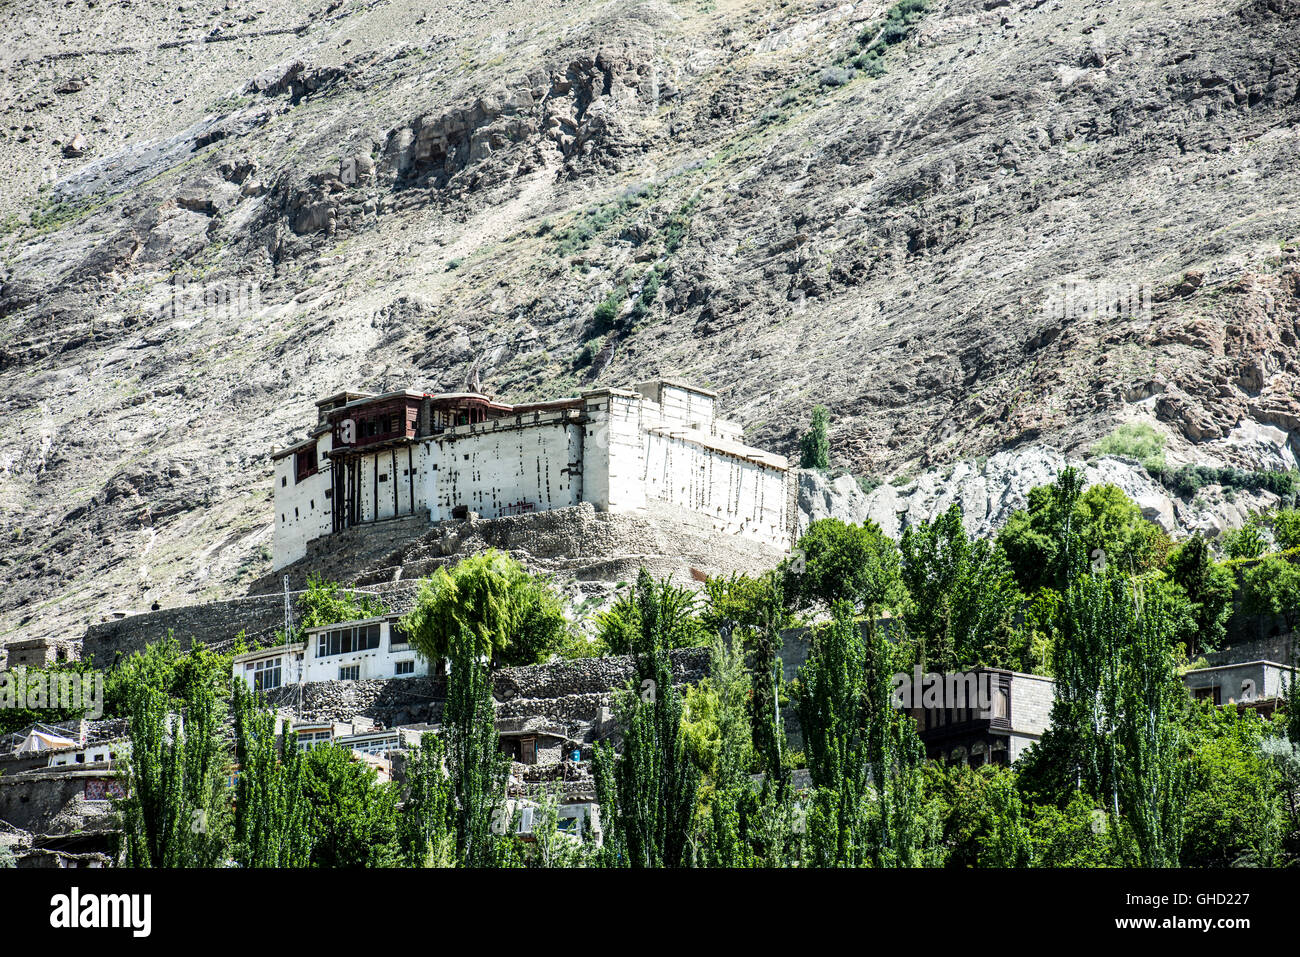 Baltit fort in Karimabad surrounded by poplars, with a back drop of a a barren cliff face - Stock Image